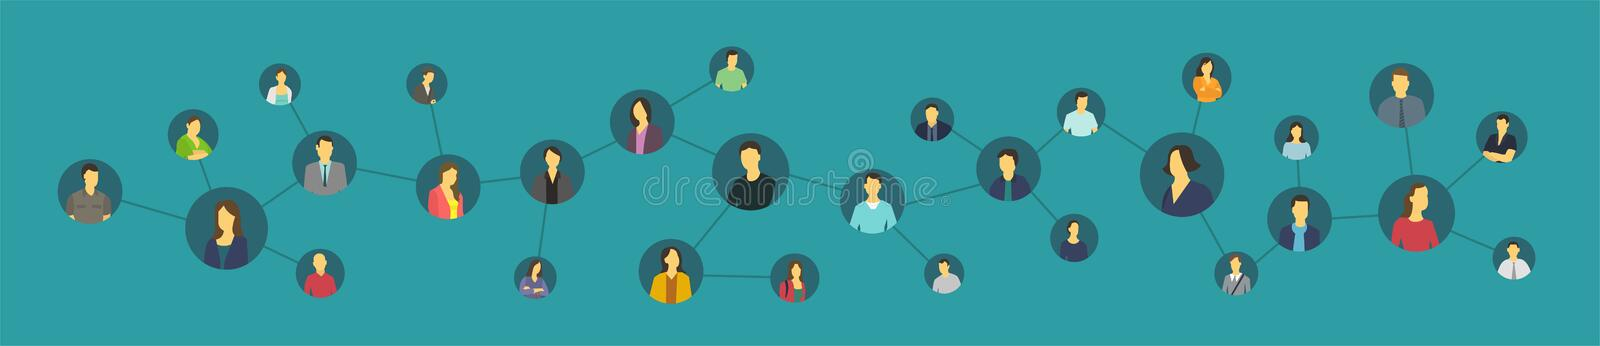 Social network person. United ties avatars. Social network. United ties avatars. Friends or colleagues on the Internet. Circle of acquaintances stock illustration